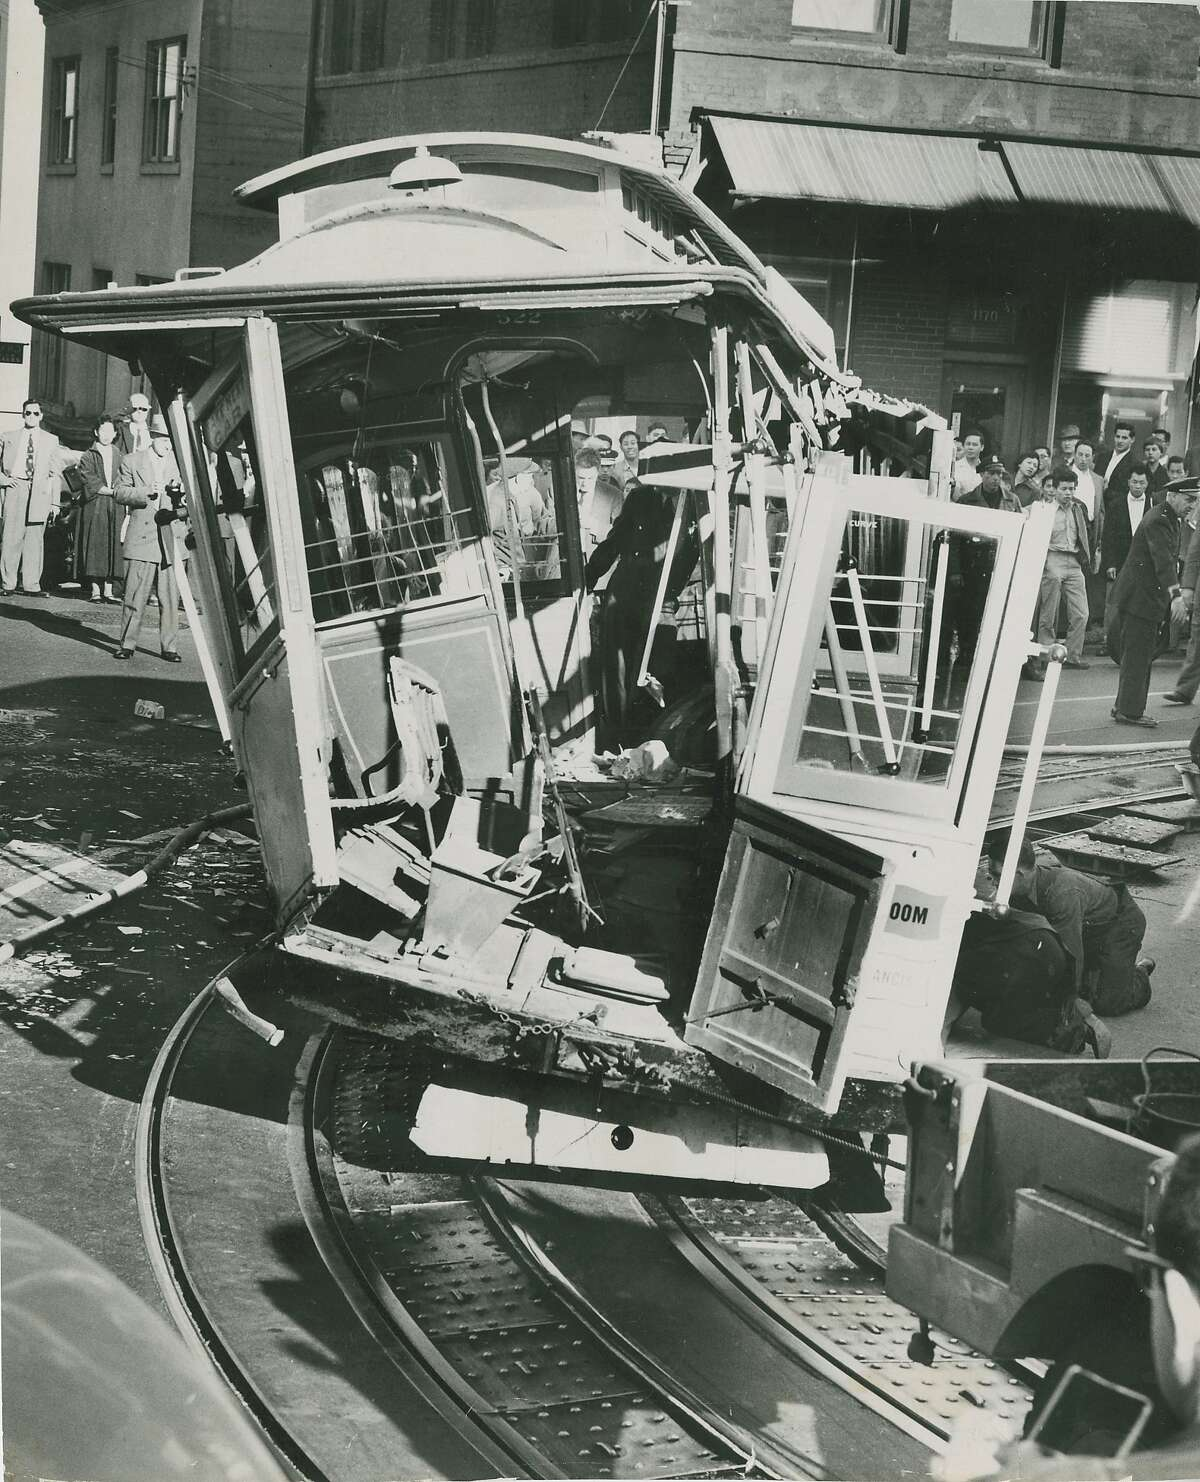 Cable car accident at the corner of Powell and Jackson Streets in San Francisco, September 16, 1955.